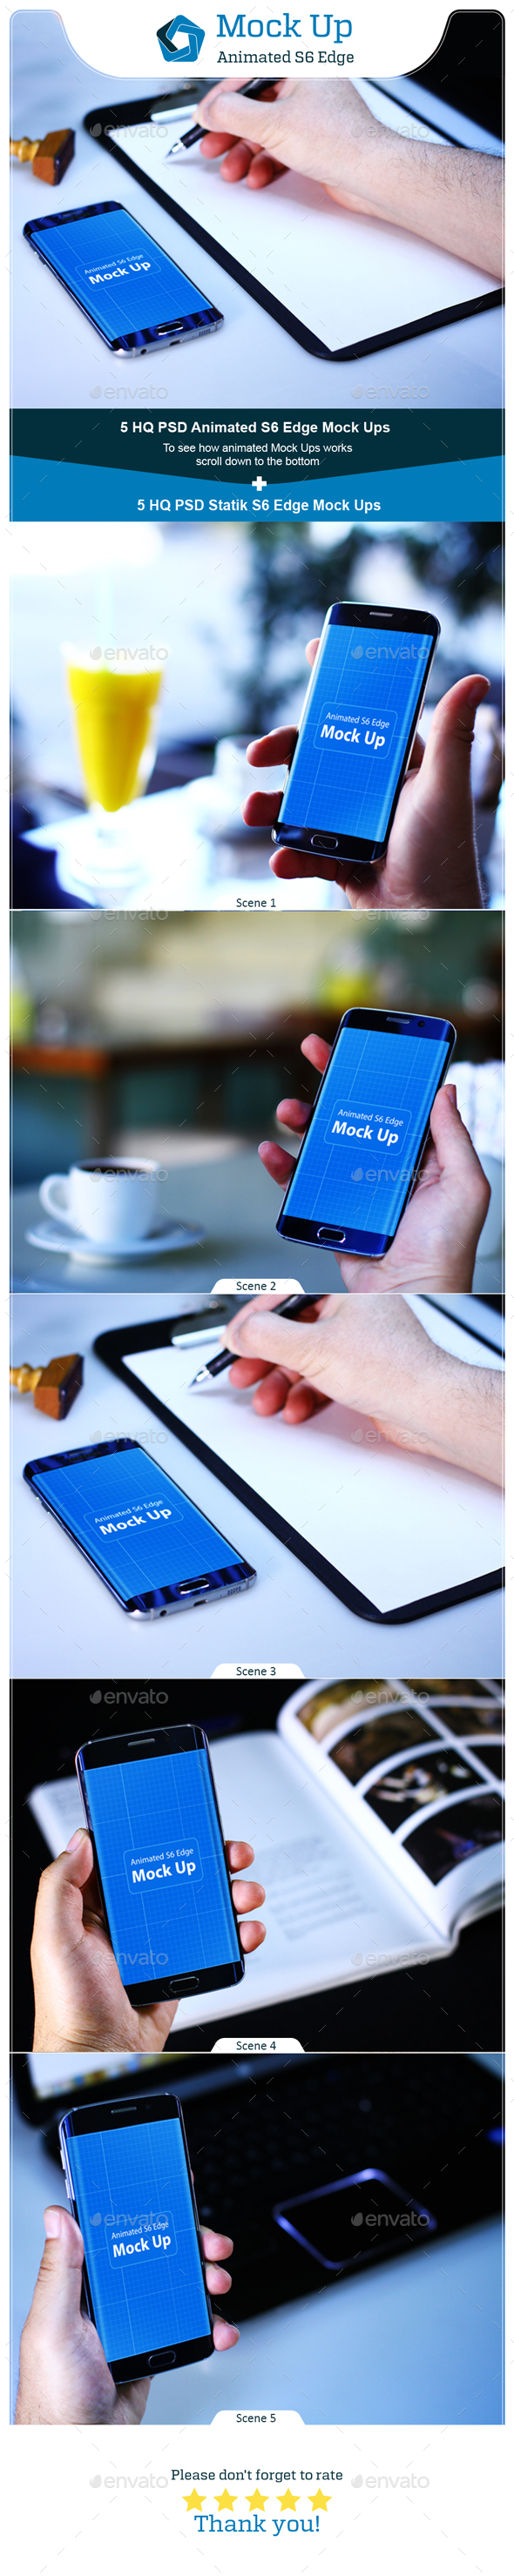 Animated S6 Edge MockUp V.1 - Mobile Displays